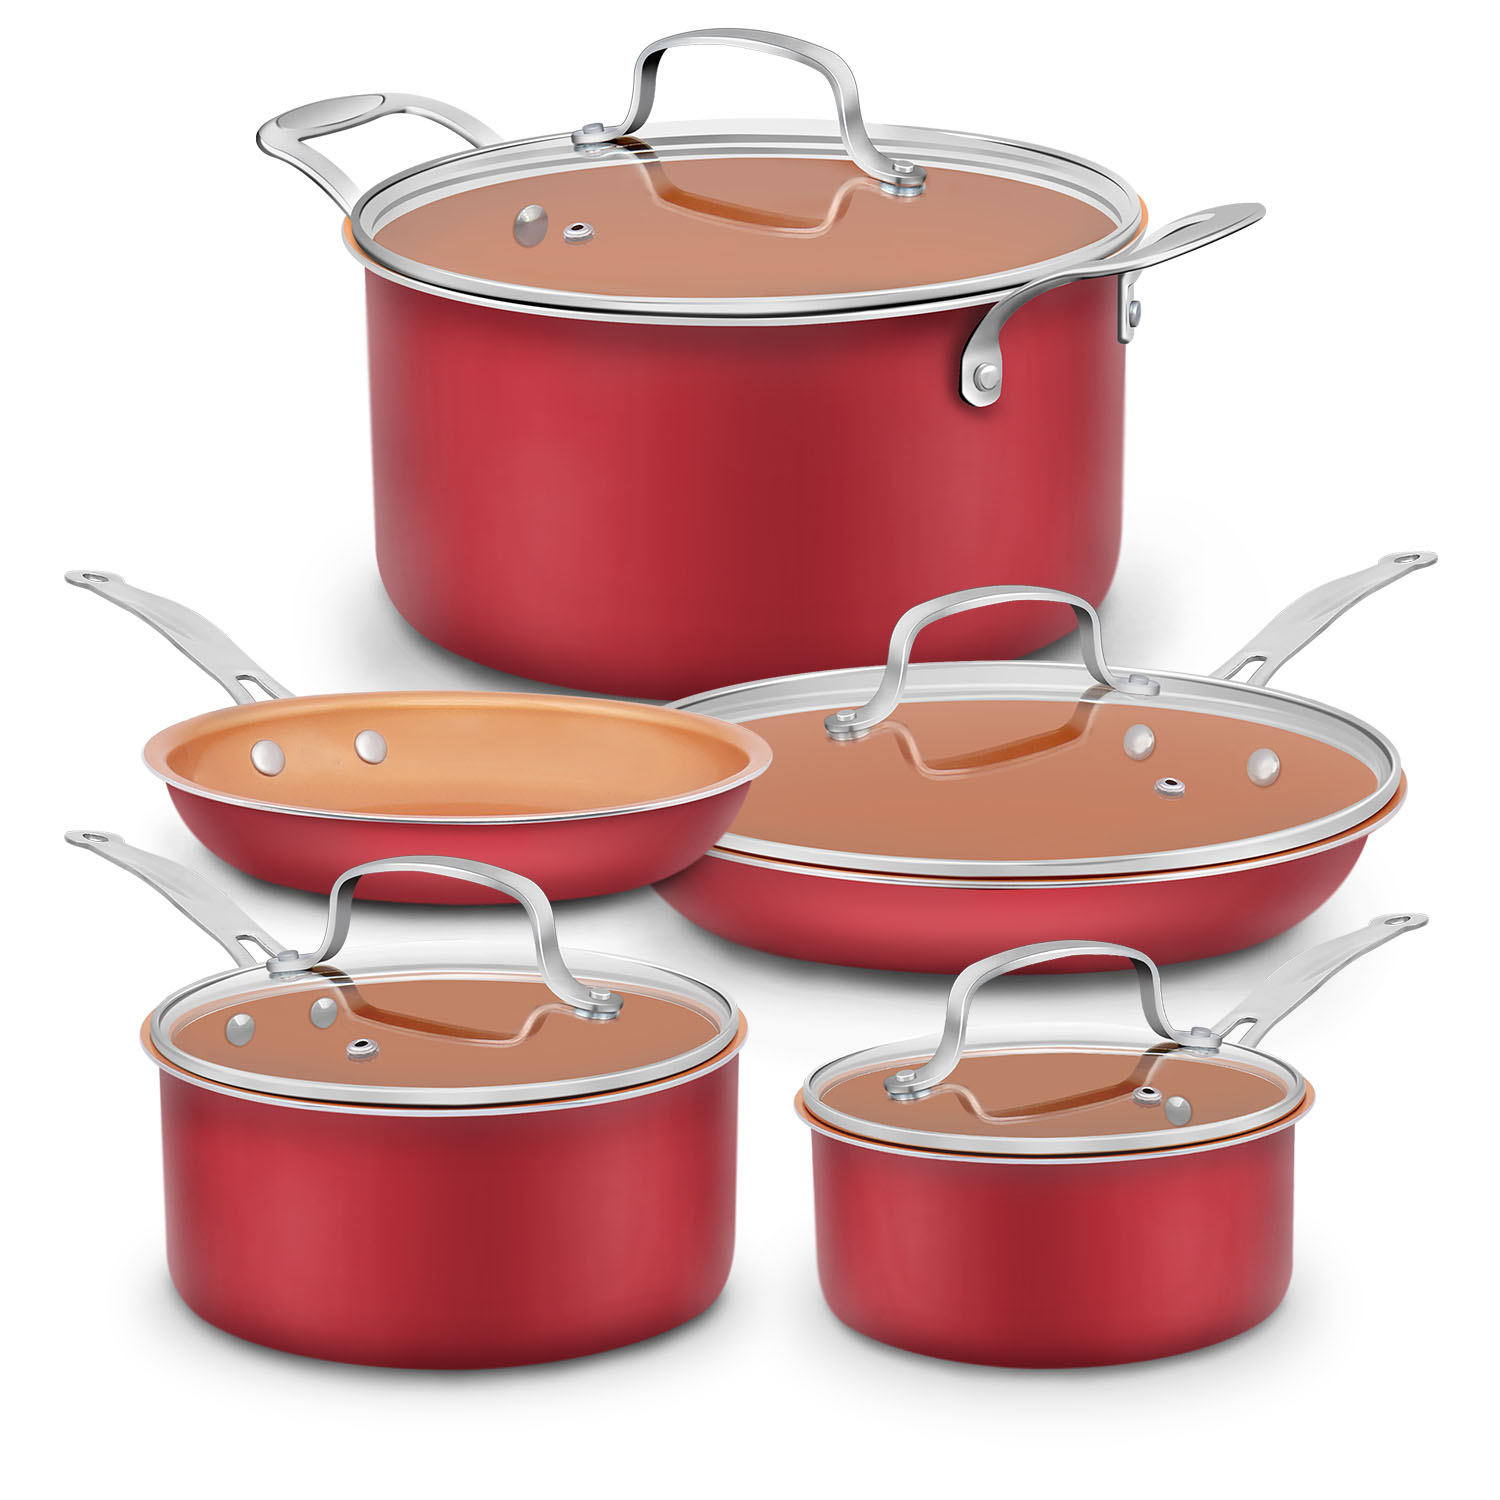 Lowest price on cookware set before New Year